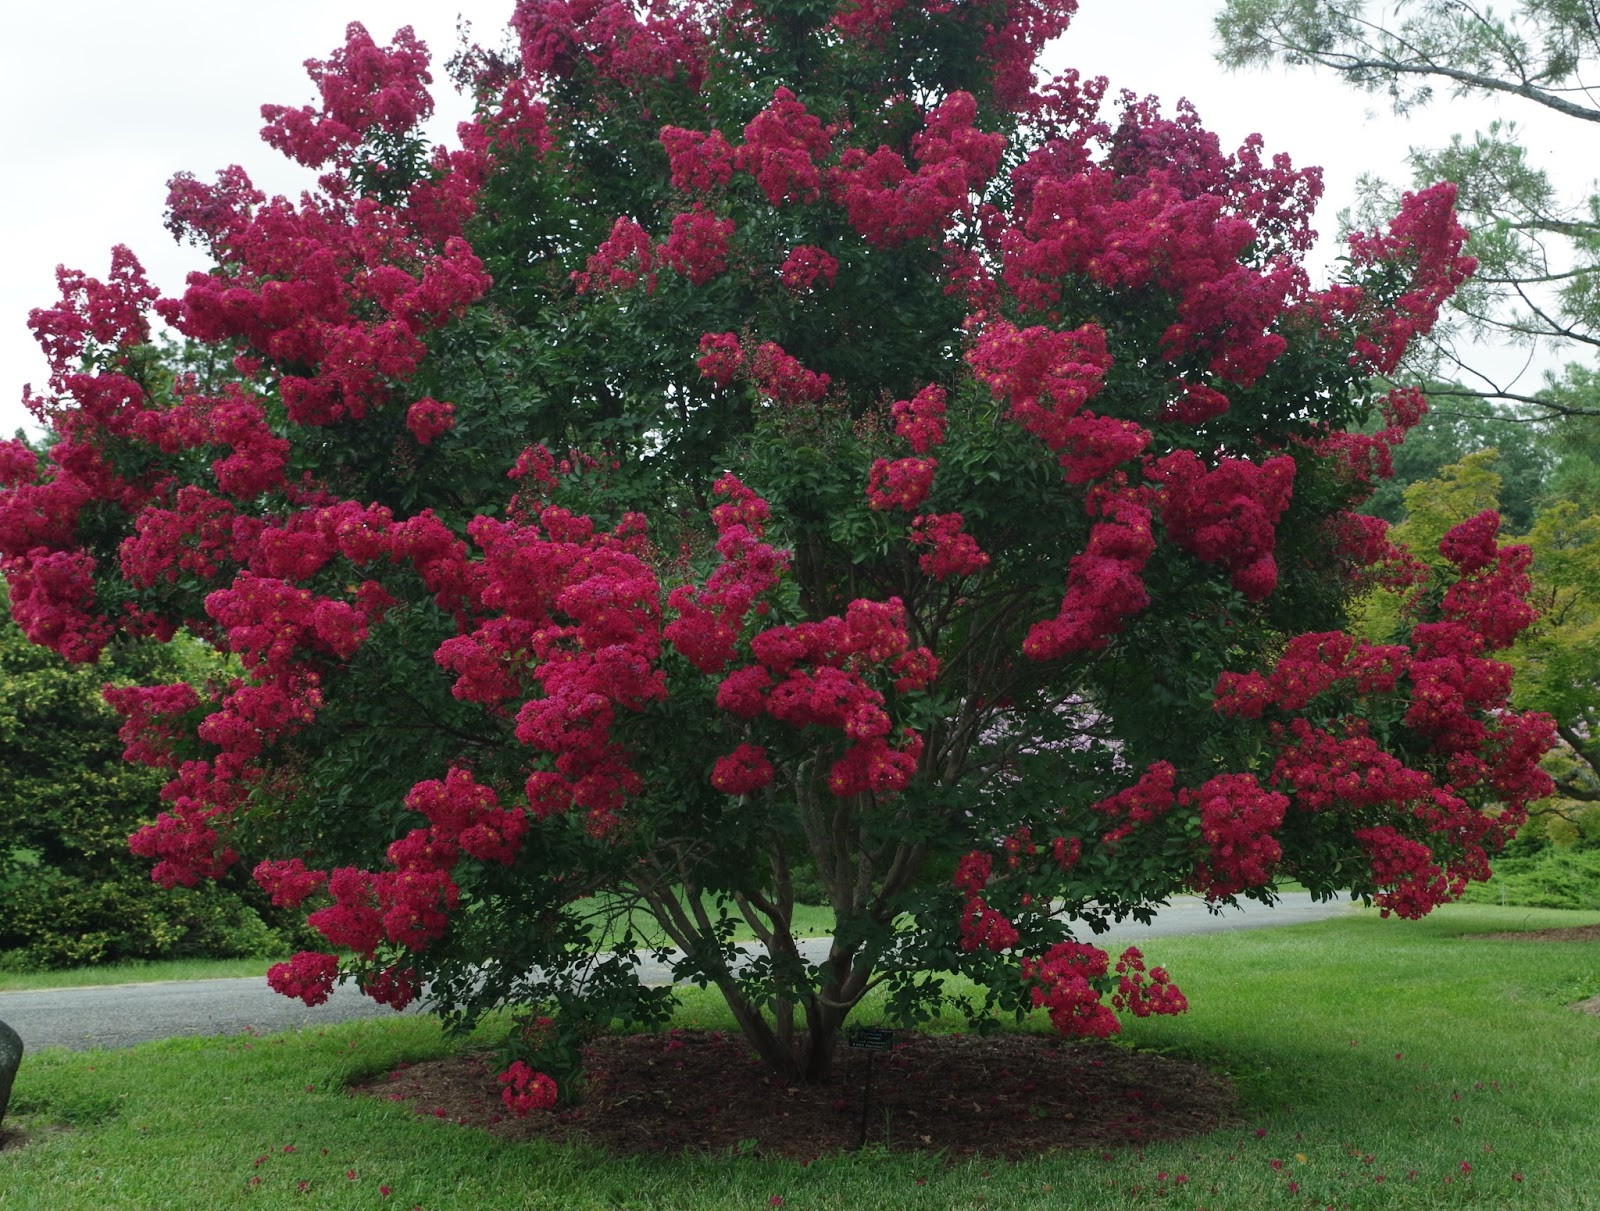 Natchez Crape Myrtle Trees for Sale Fast Growing Trees Pictures of crape myrtle